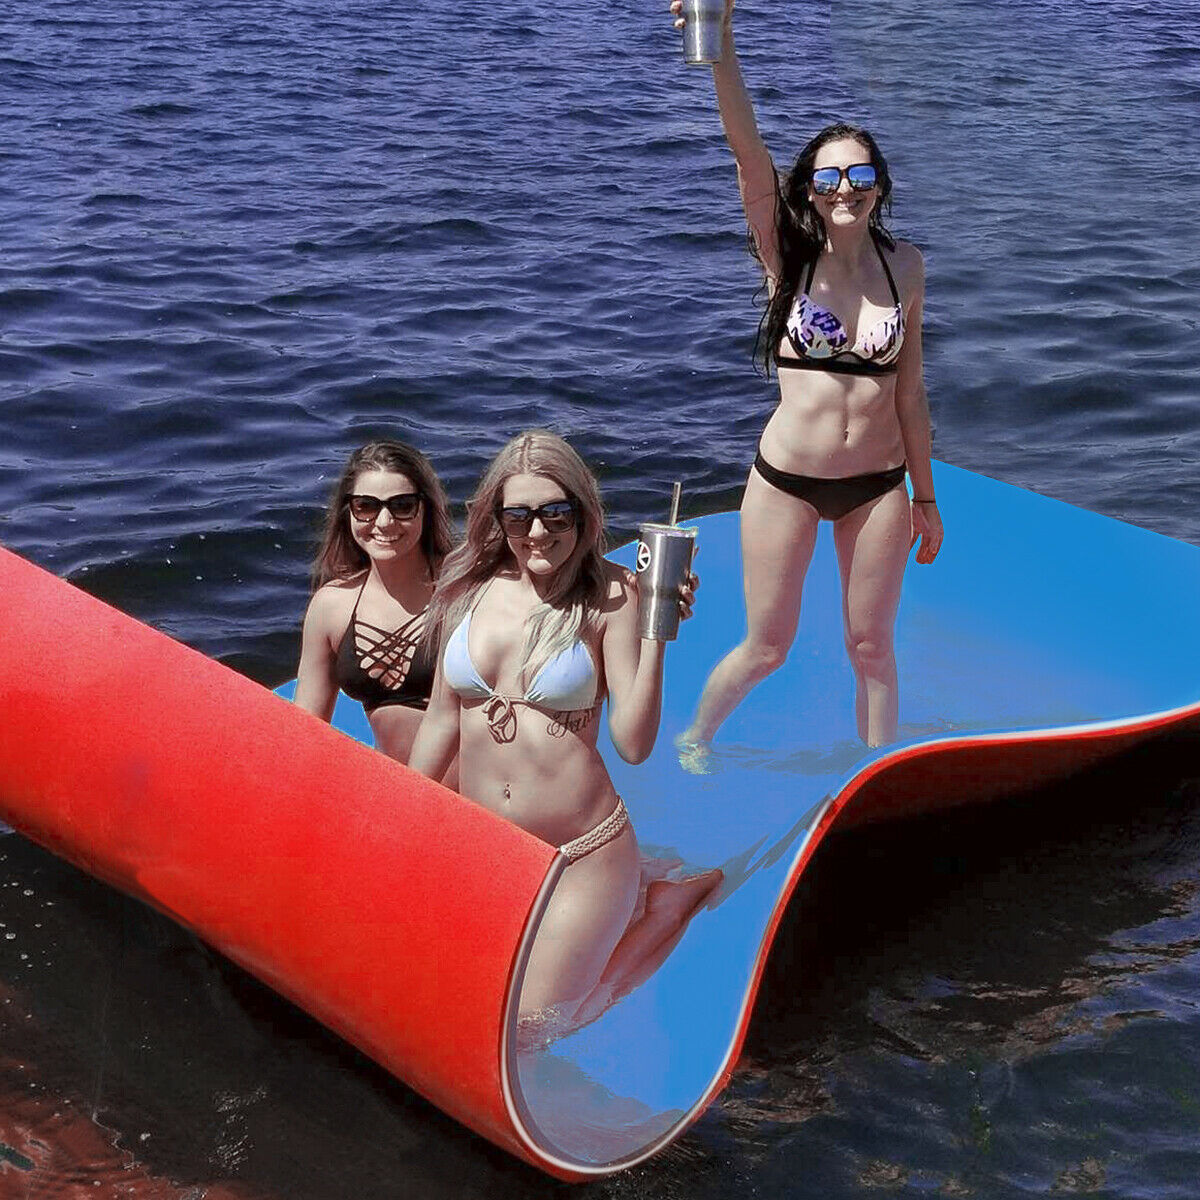 Gymax 3 Layer Water Mat Floating Pad Island Water Sports Recreation Relaxing 9' x 6'